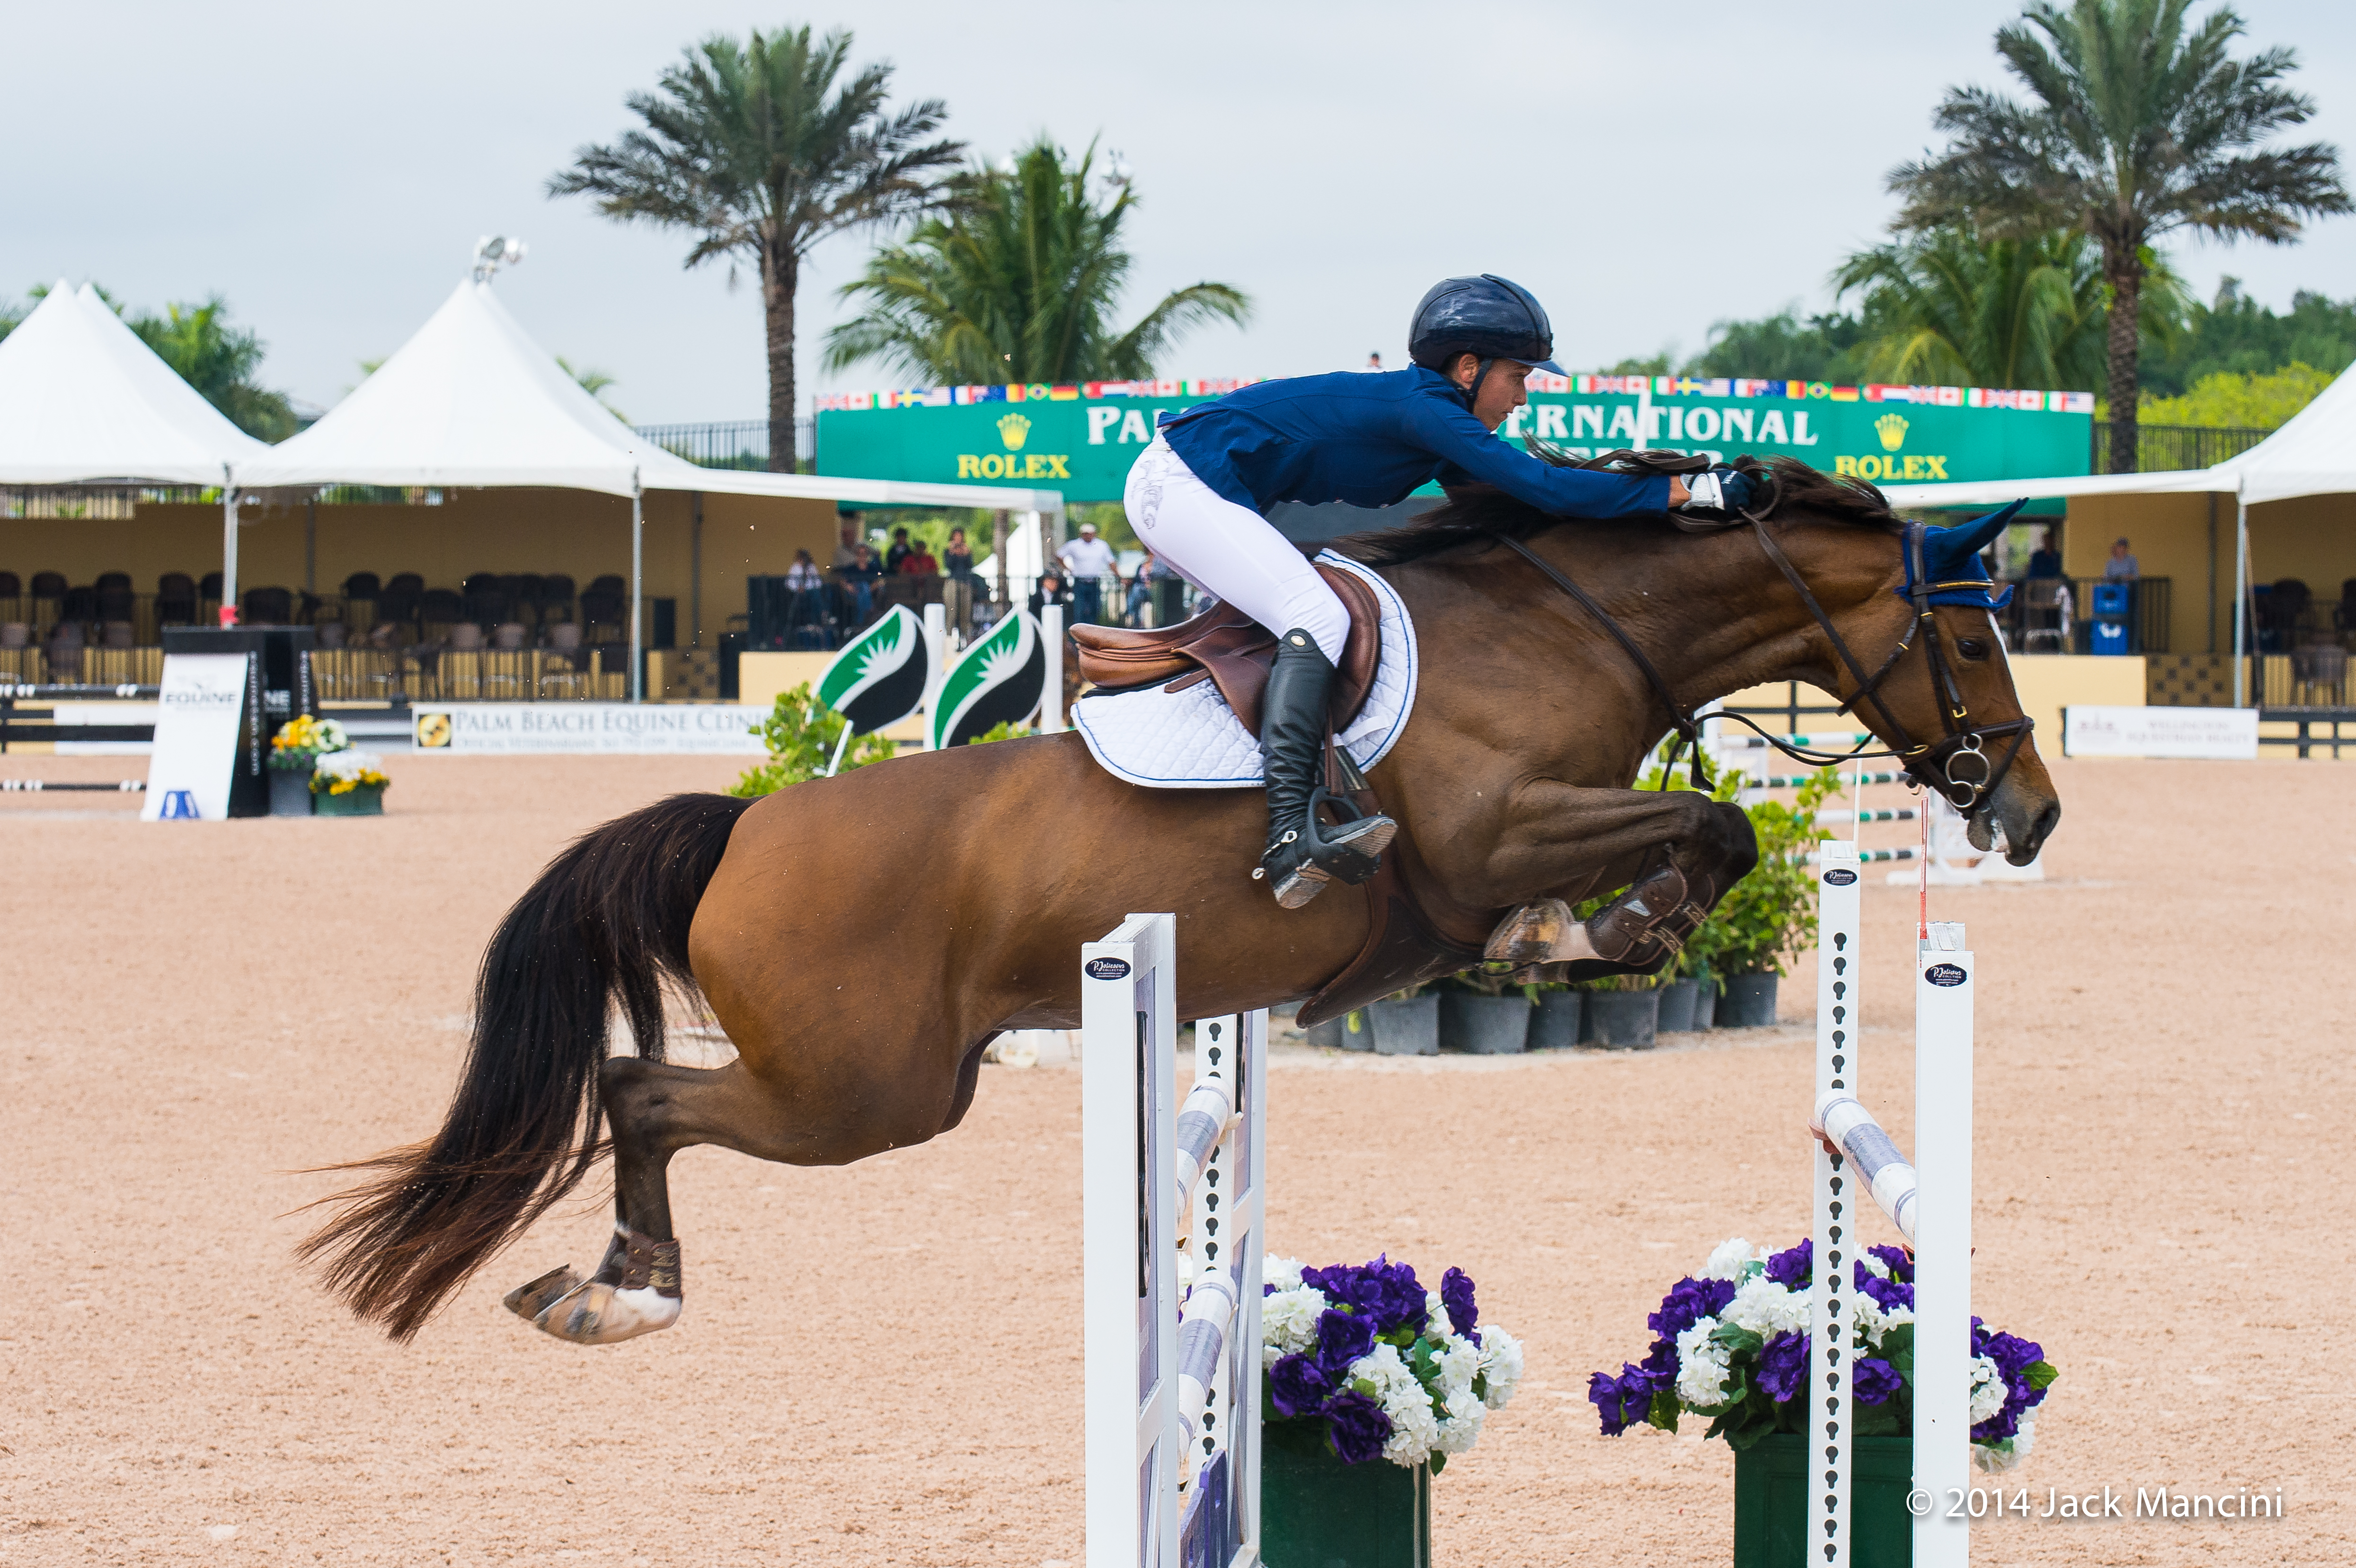 Nataly in the International Ring at the Palm Beach International Equestrian Center in Wellington, Florida. (Photo by Jack Mancini)